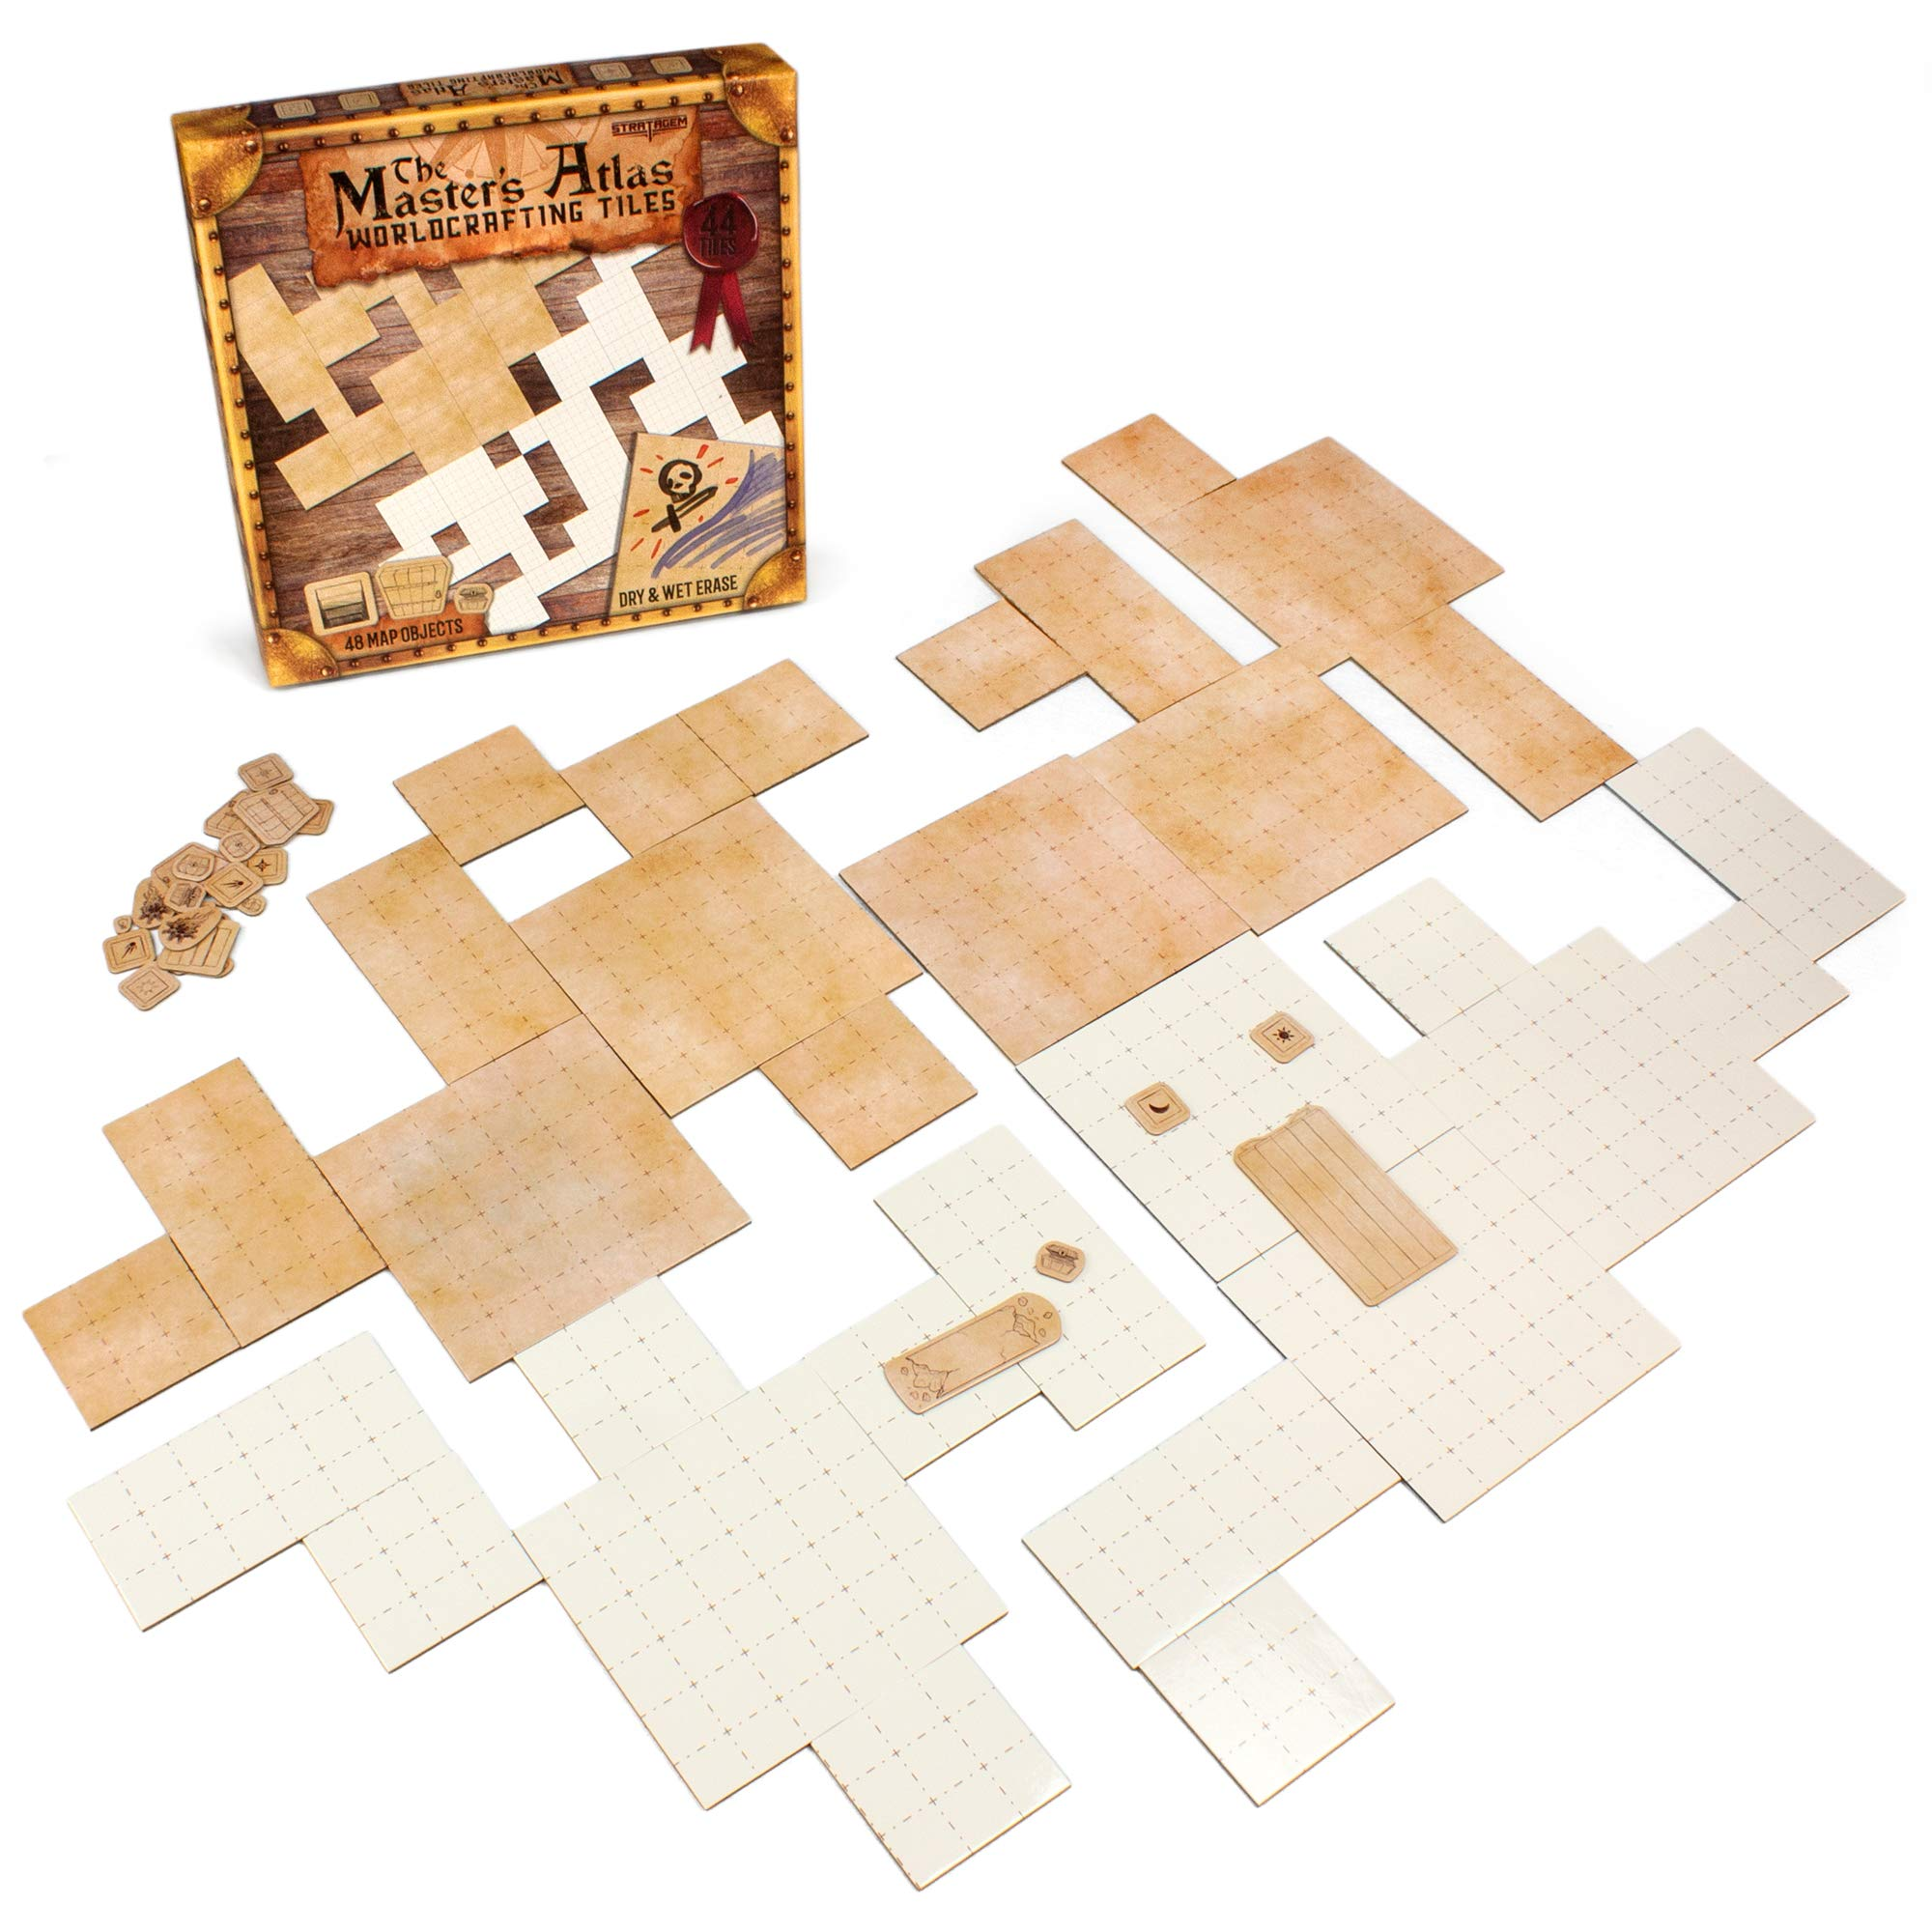 The Master's Atlas (Blank/Parchment) | 44 Reversible Dry & Wet Erase Map Grid Tiles | 48 Dungeon Object Tokens: Treasure, Doors, Stairs and More | RPG Tabletop Role Playing Mat for Fantasy Gaming by Stratagem